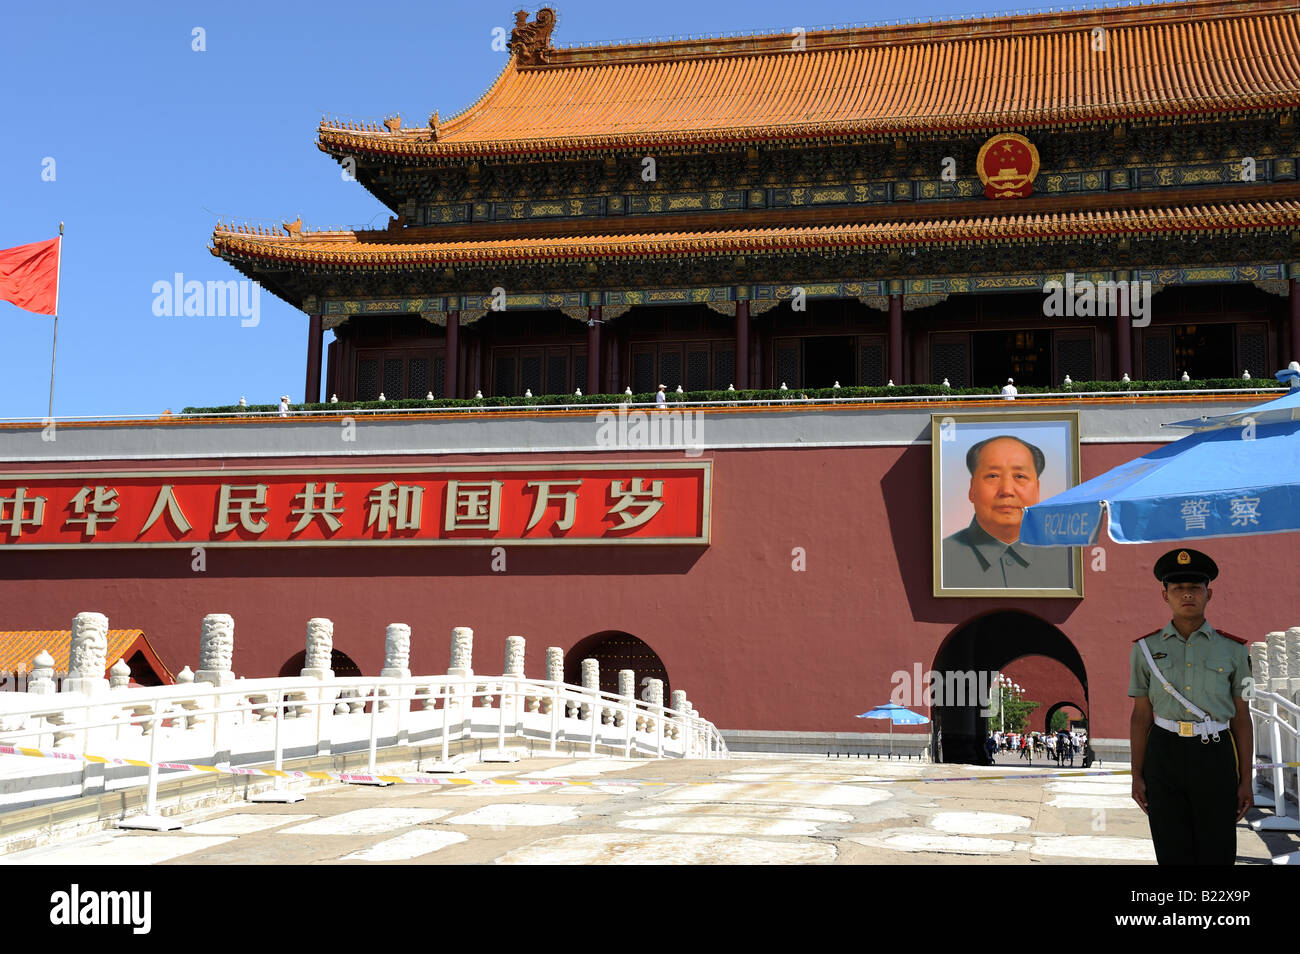 The Tiananmen Gate in Beijing China. 12-Jul-2008 - Stock Image